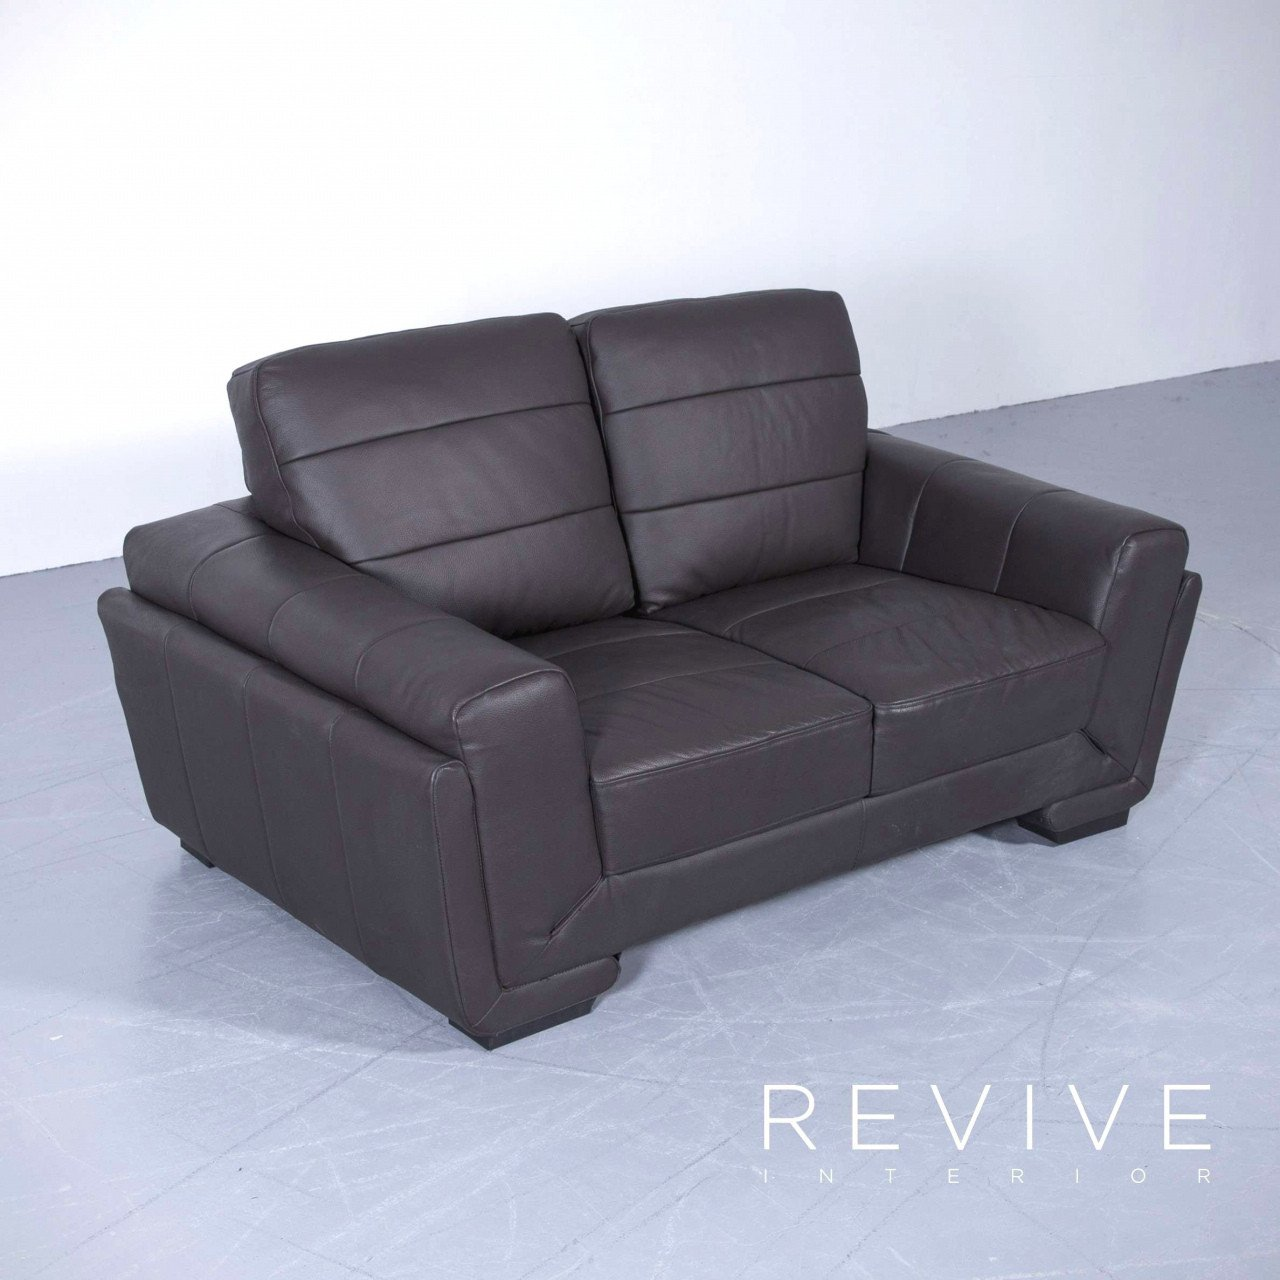 Mini Couch for Bedroom Best Of Full Size sofa Bed — Procura Home Blog